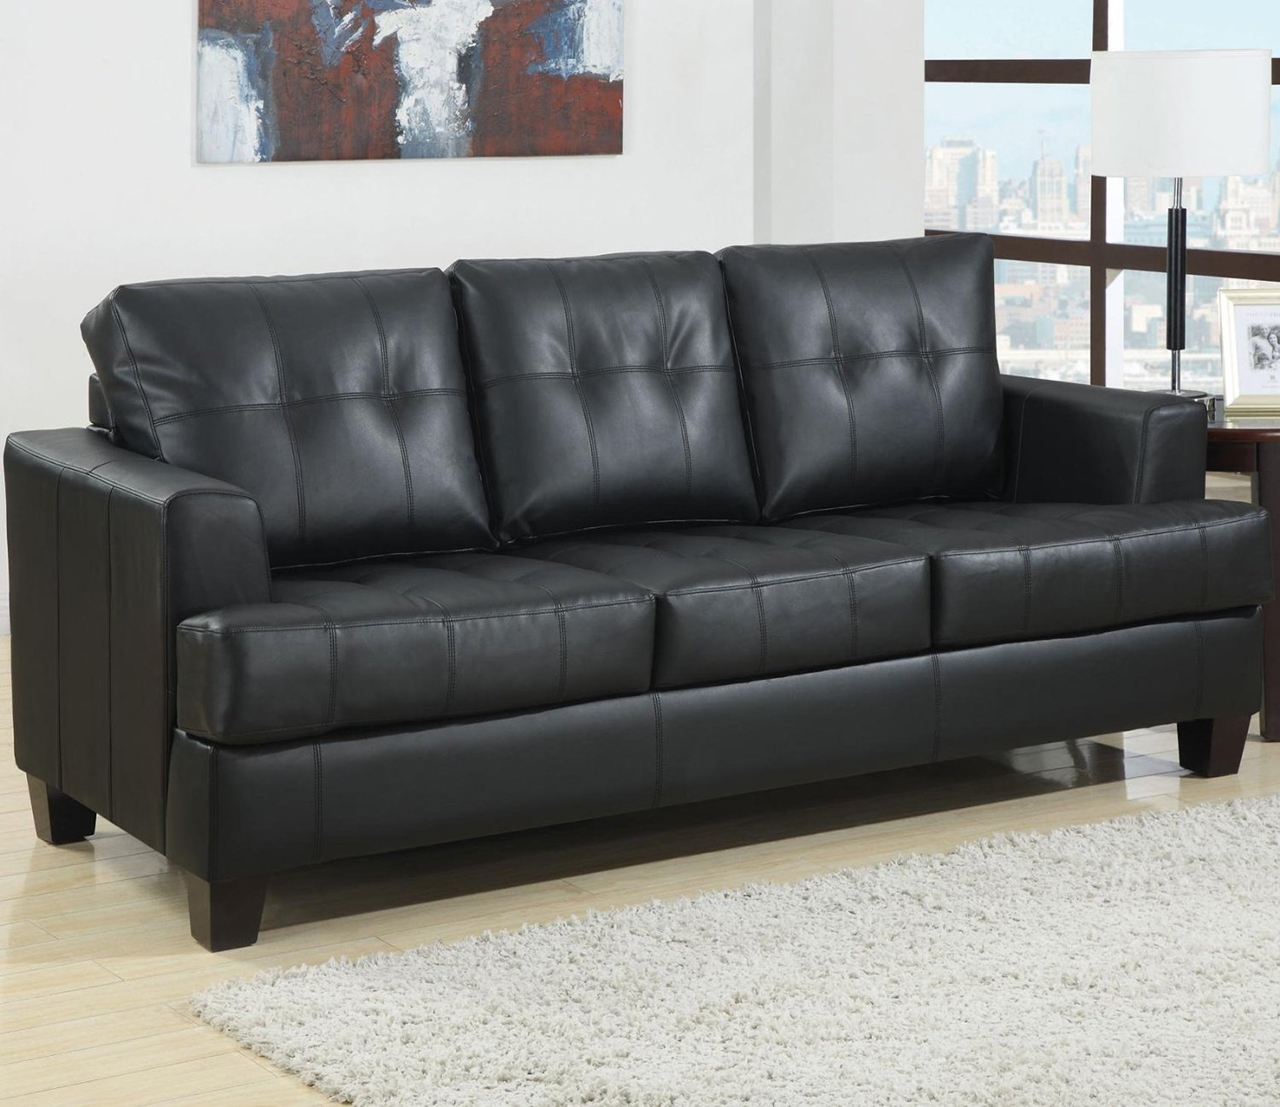 70s sofa cushion ideas for dark brown 12 best collection of 70 sleeper